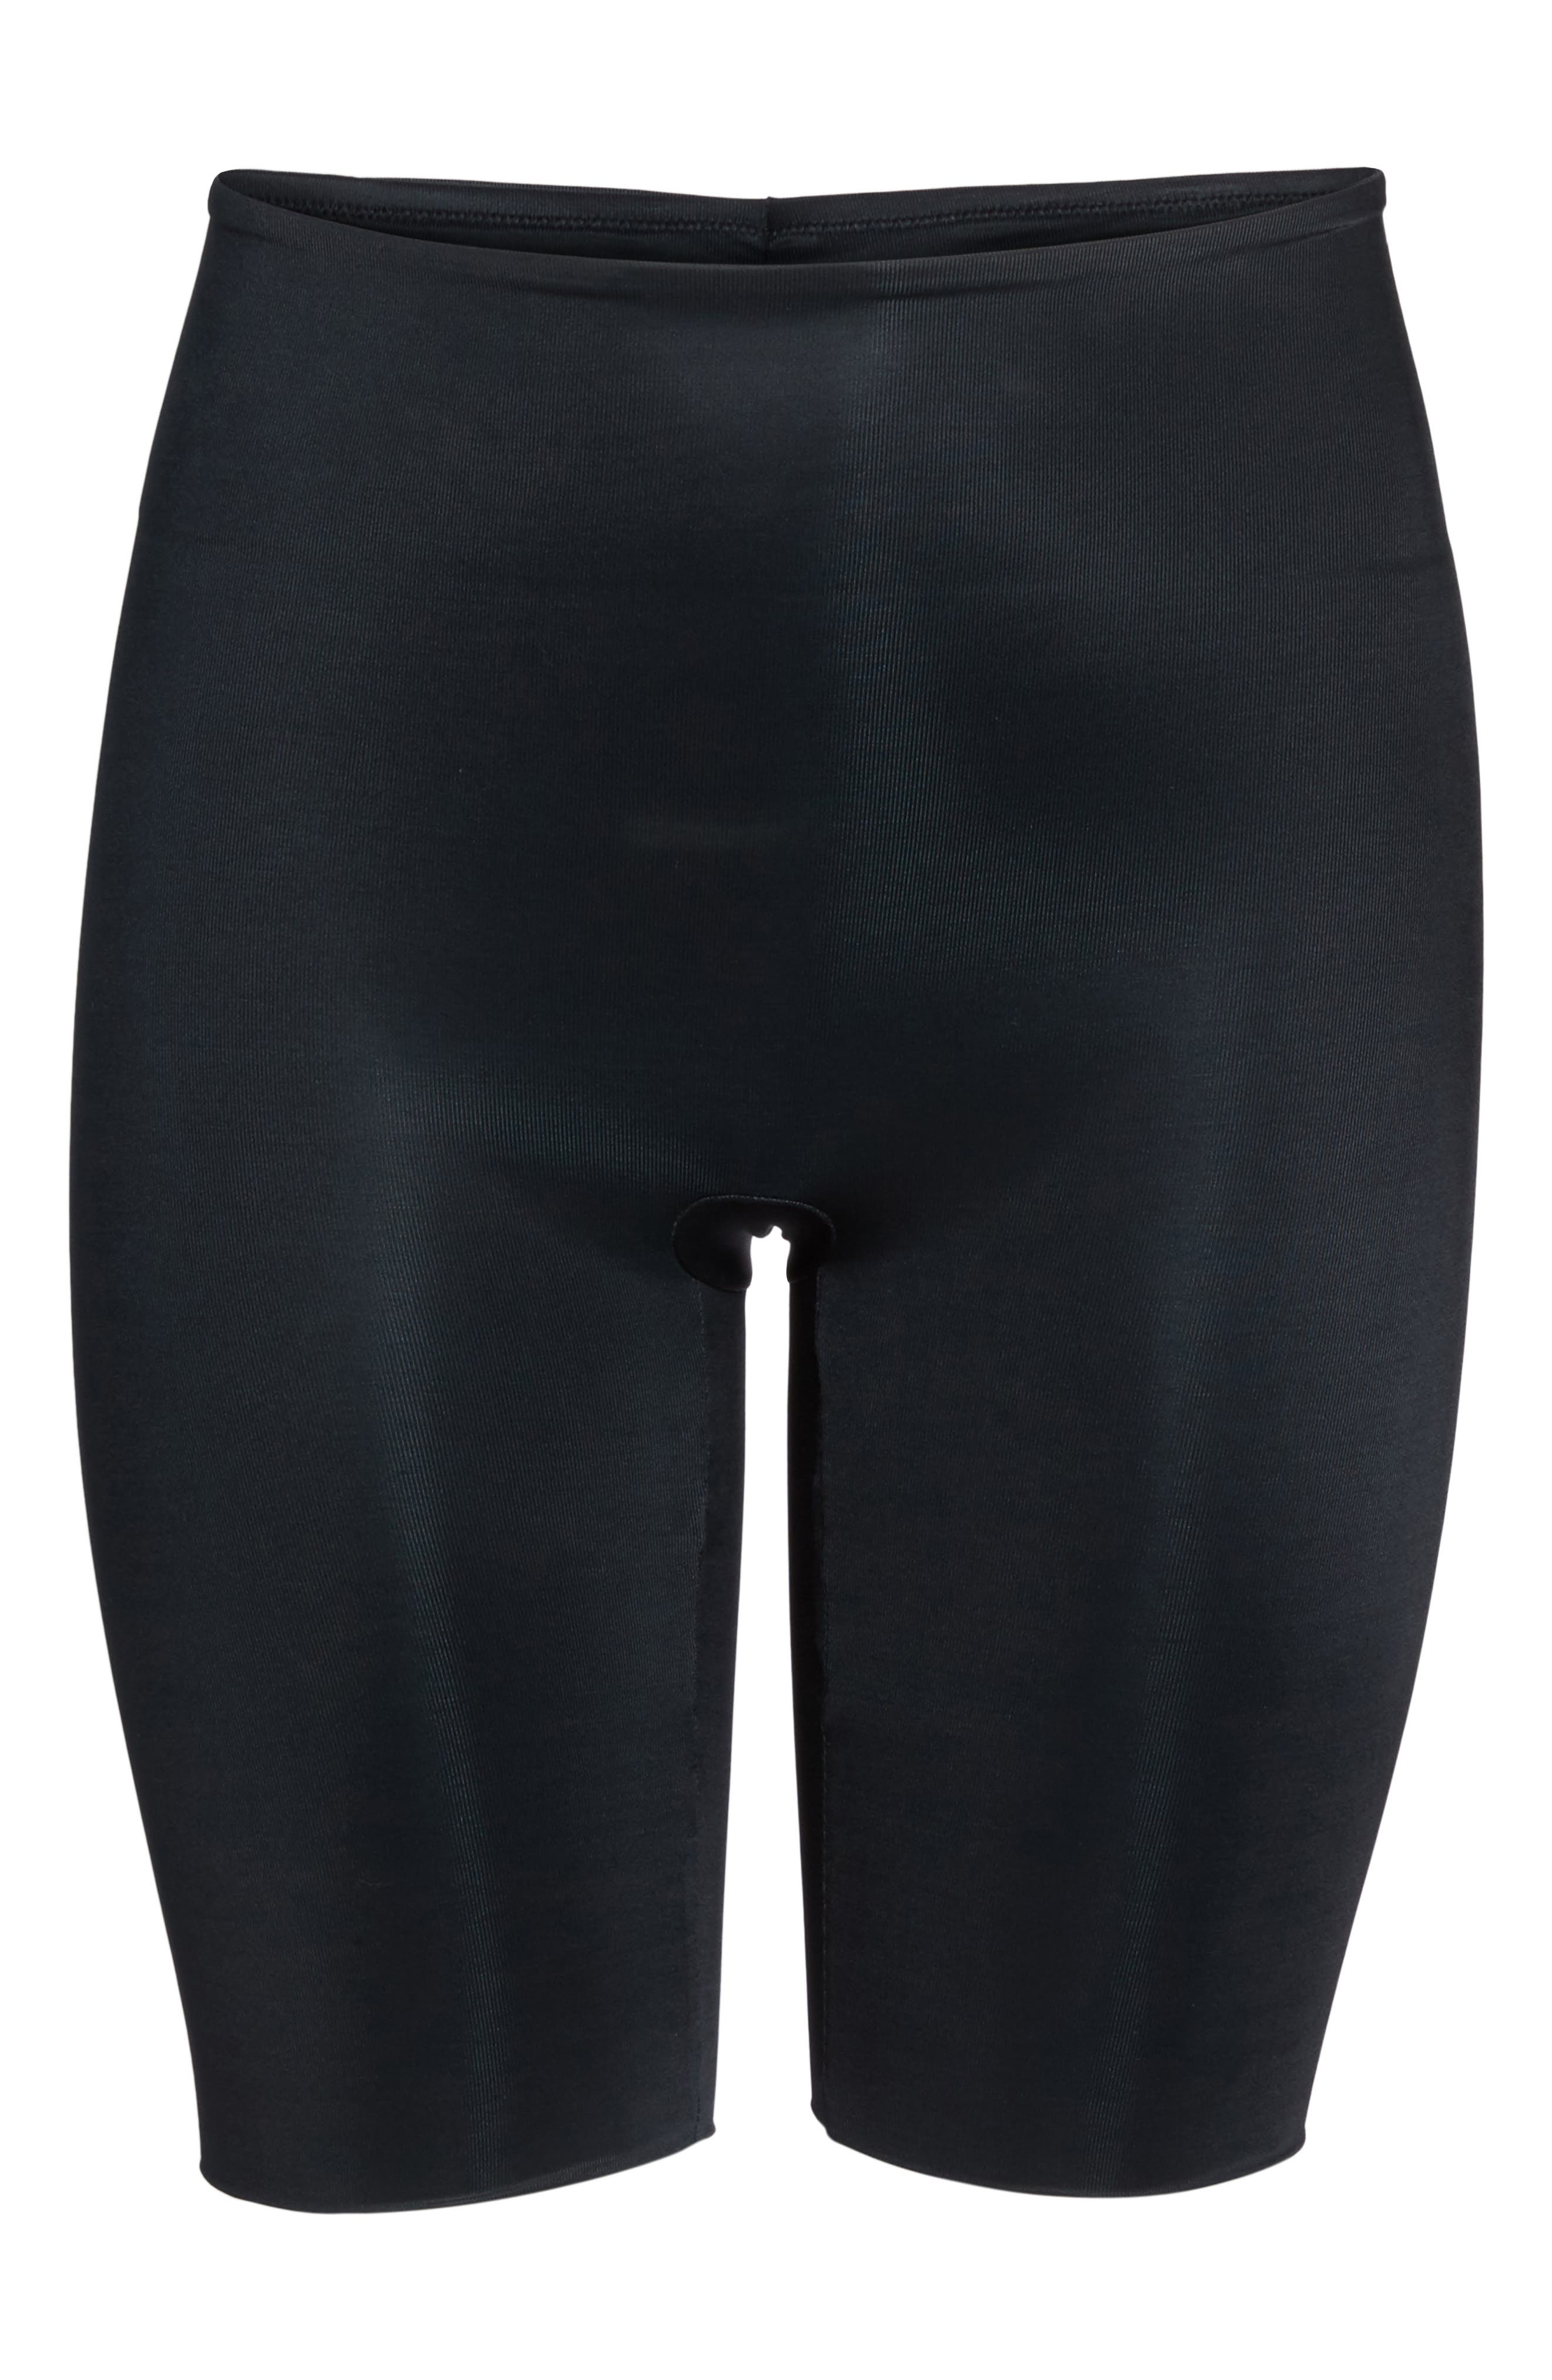 Power Conceal-Her Mid-Thigh Shorts,                             Alternate thumbnail 9, color,